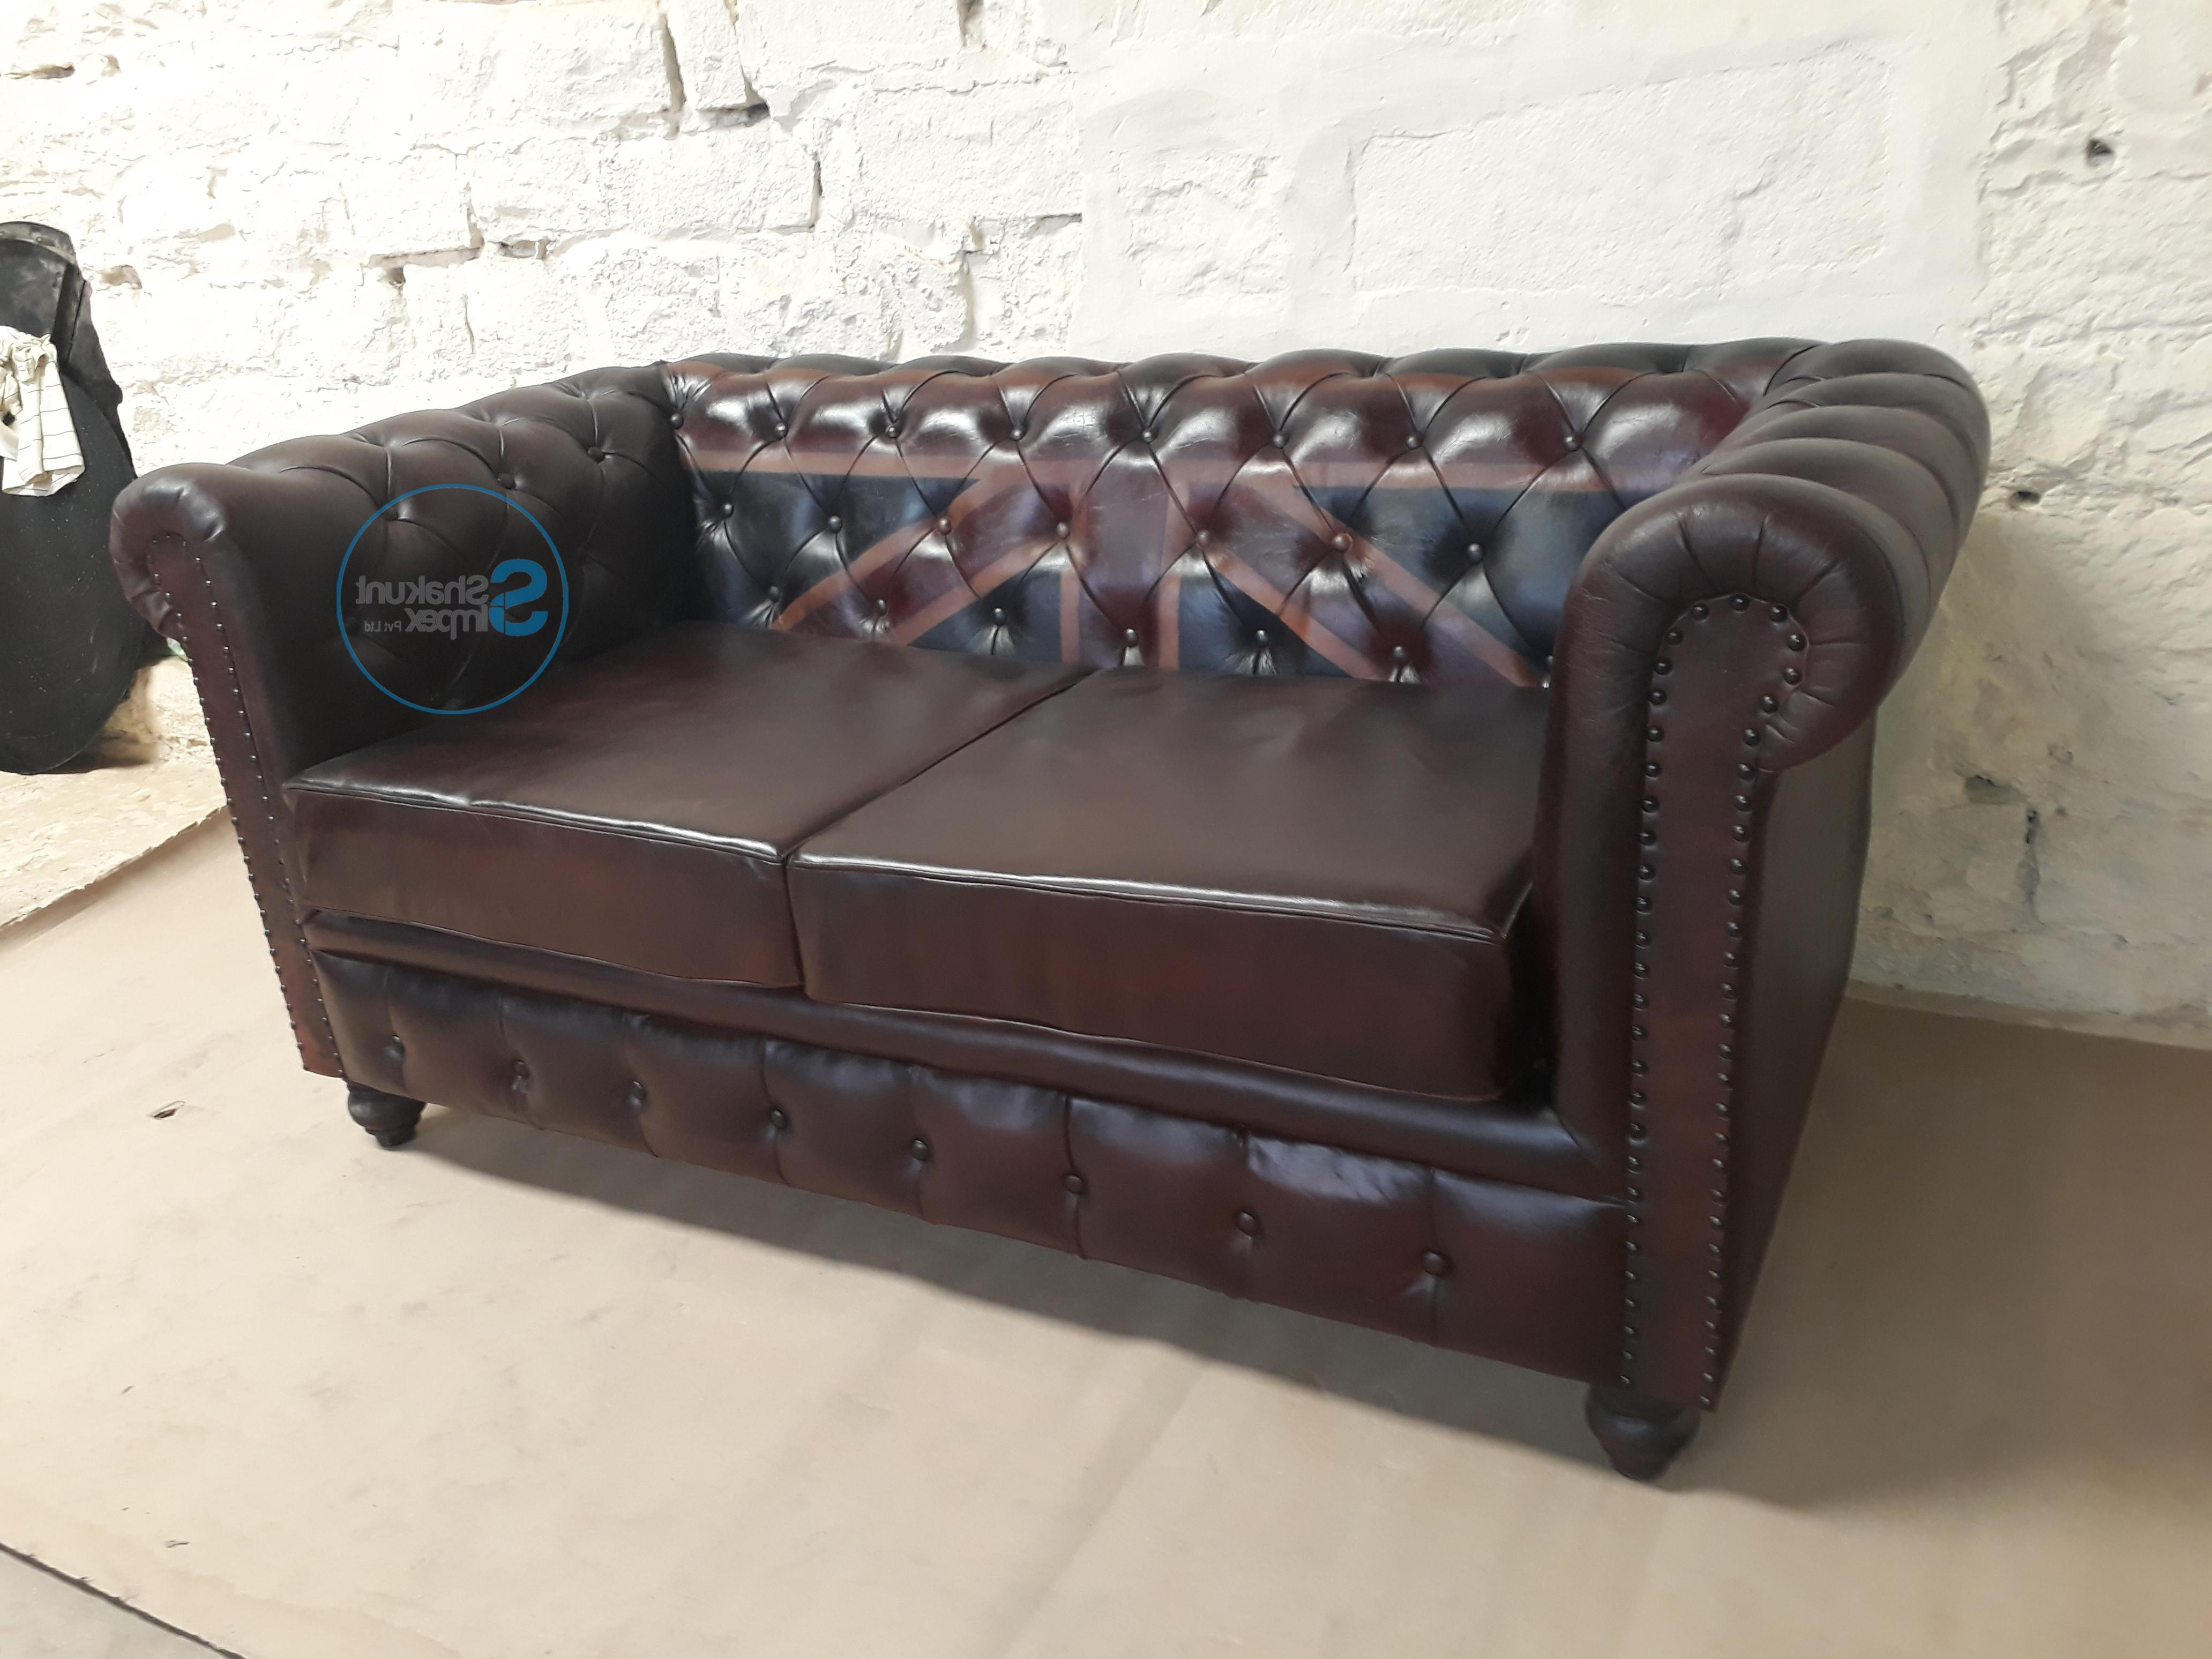 Vintage Chesterfield Sofas Intended For 2019 Vintage Leather Chesterfield Union Jack Sofa – Shakunt Vintage (Gallery 17 of 20)